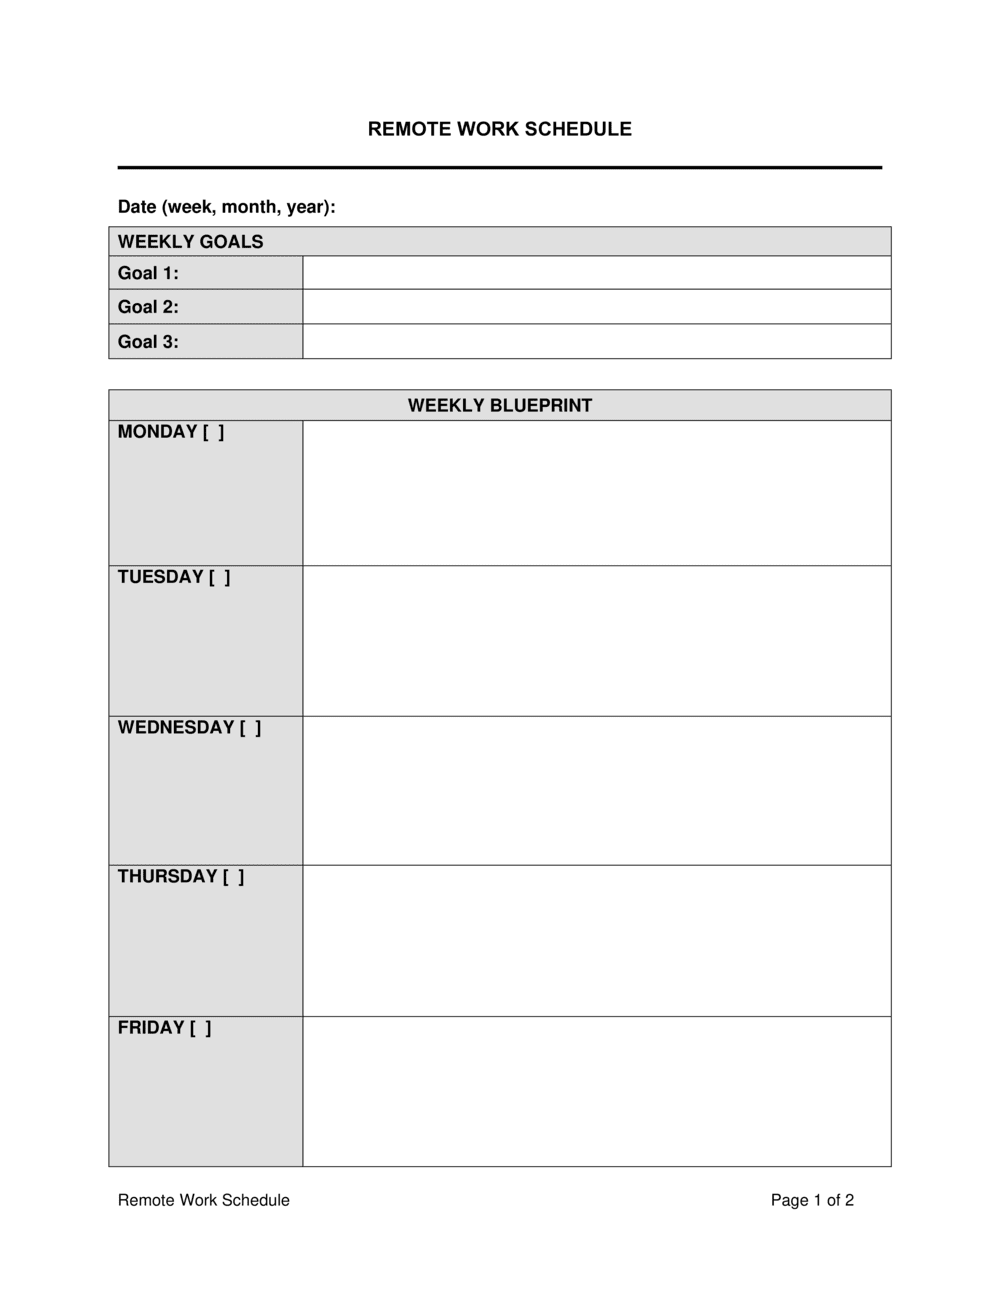 Business-in-a-Box's Remote Work Schedule Template